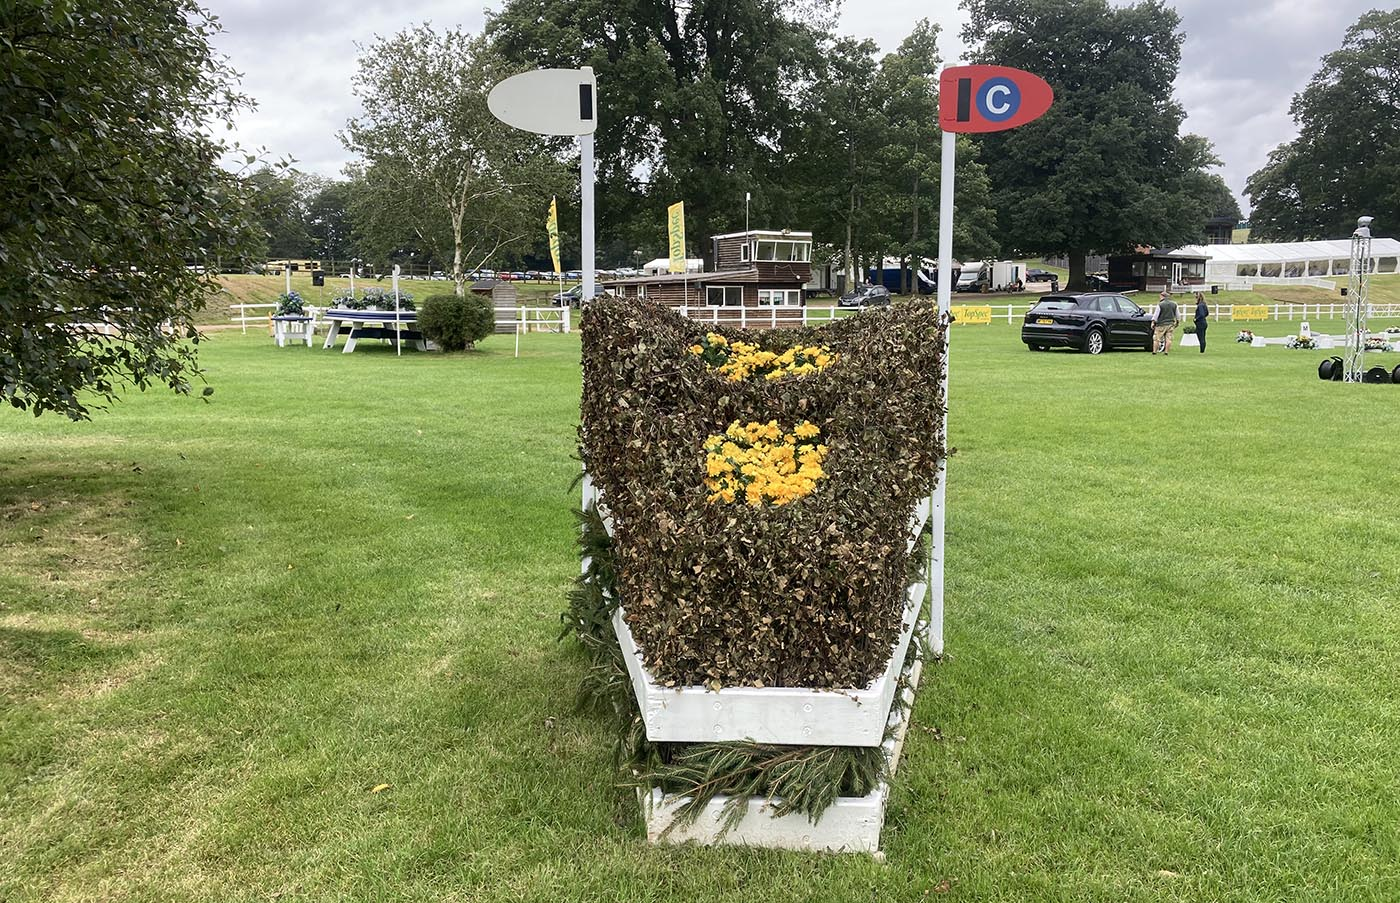 Bicton Horse Trials cross-country course: five-star fence 14c alternative